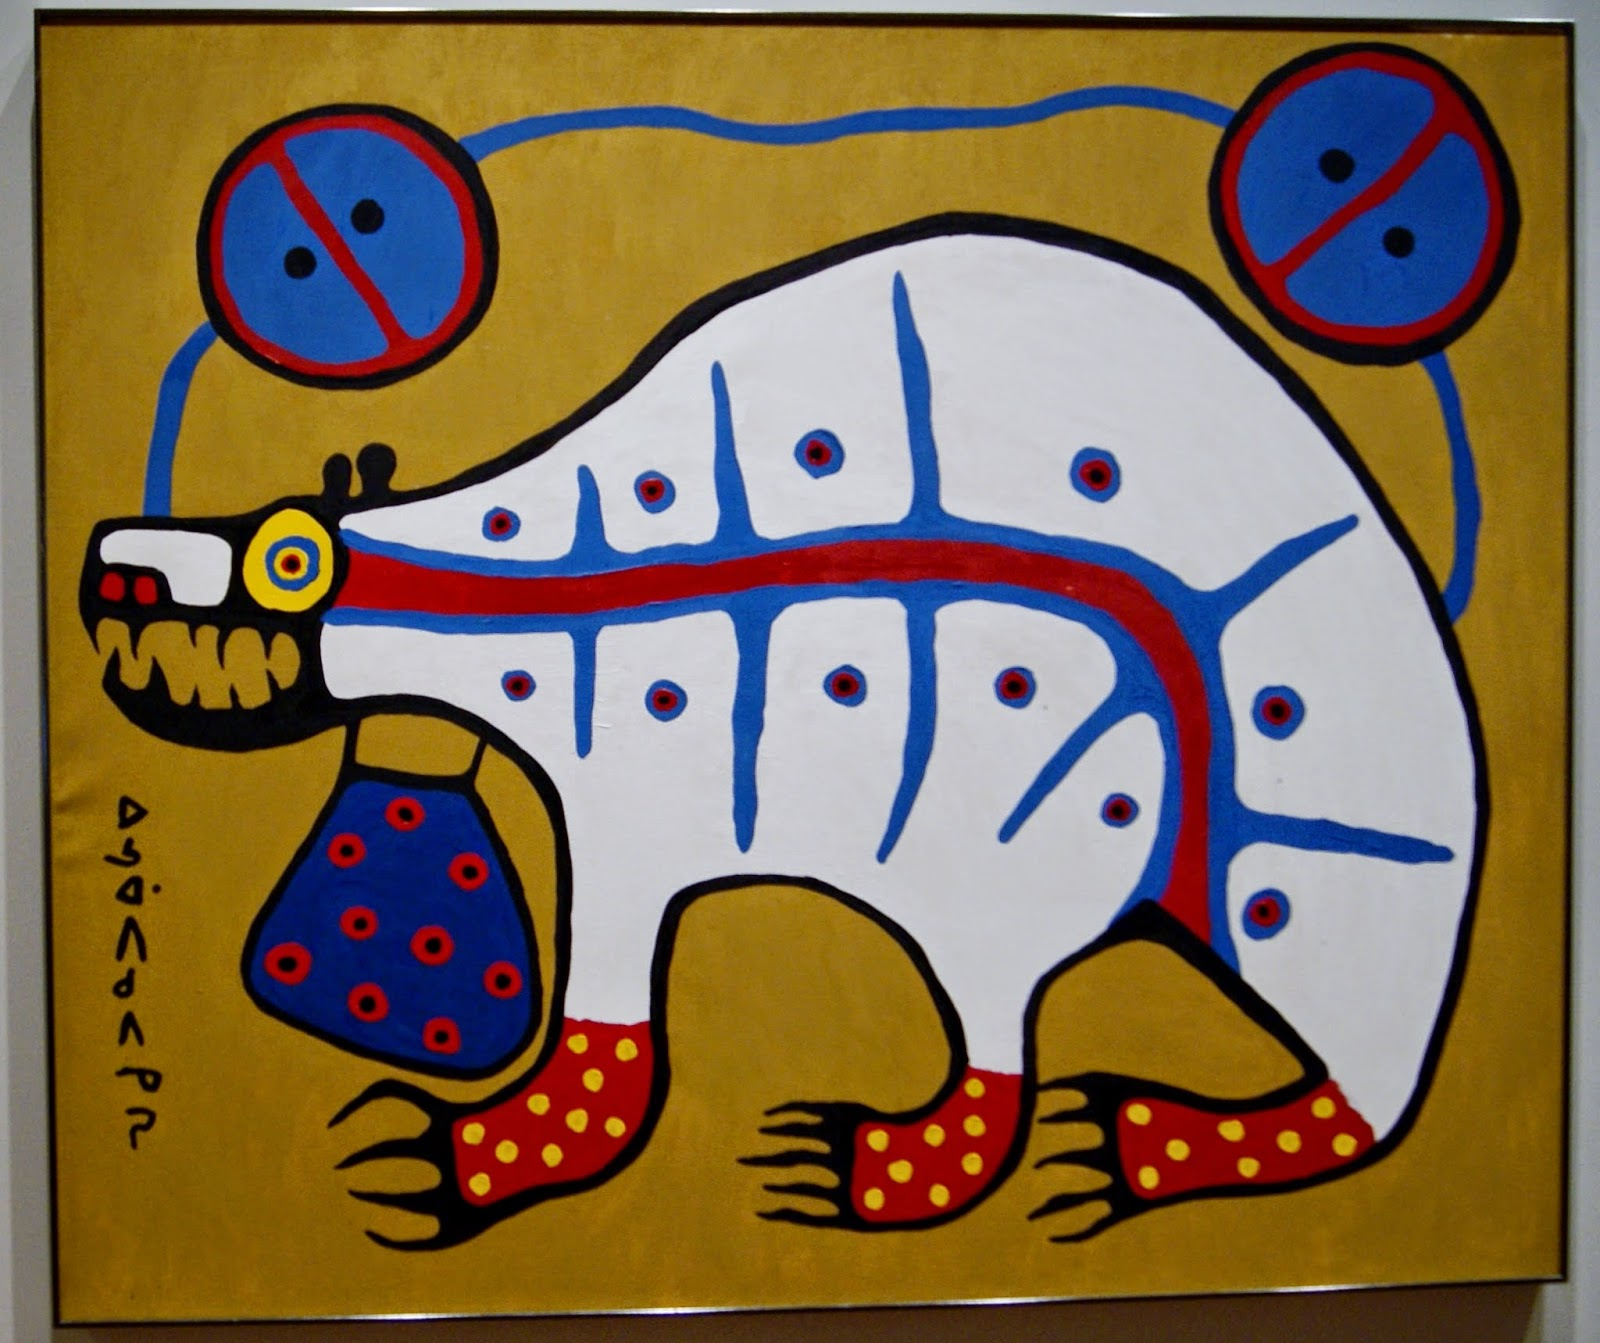 Before and after the Horizon: Anishinaabe Artists of The Great Lakes Exhibition at The Art Gallery of Ontario in Toronto, Culture, Native, Aboriginal, History, Ontario, Canada, The Purple Scarf, Melanie.Ps, Norval Morrisseau, Scared Medicine Bear